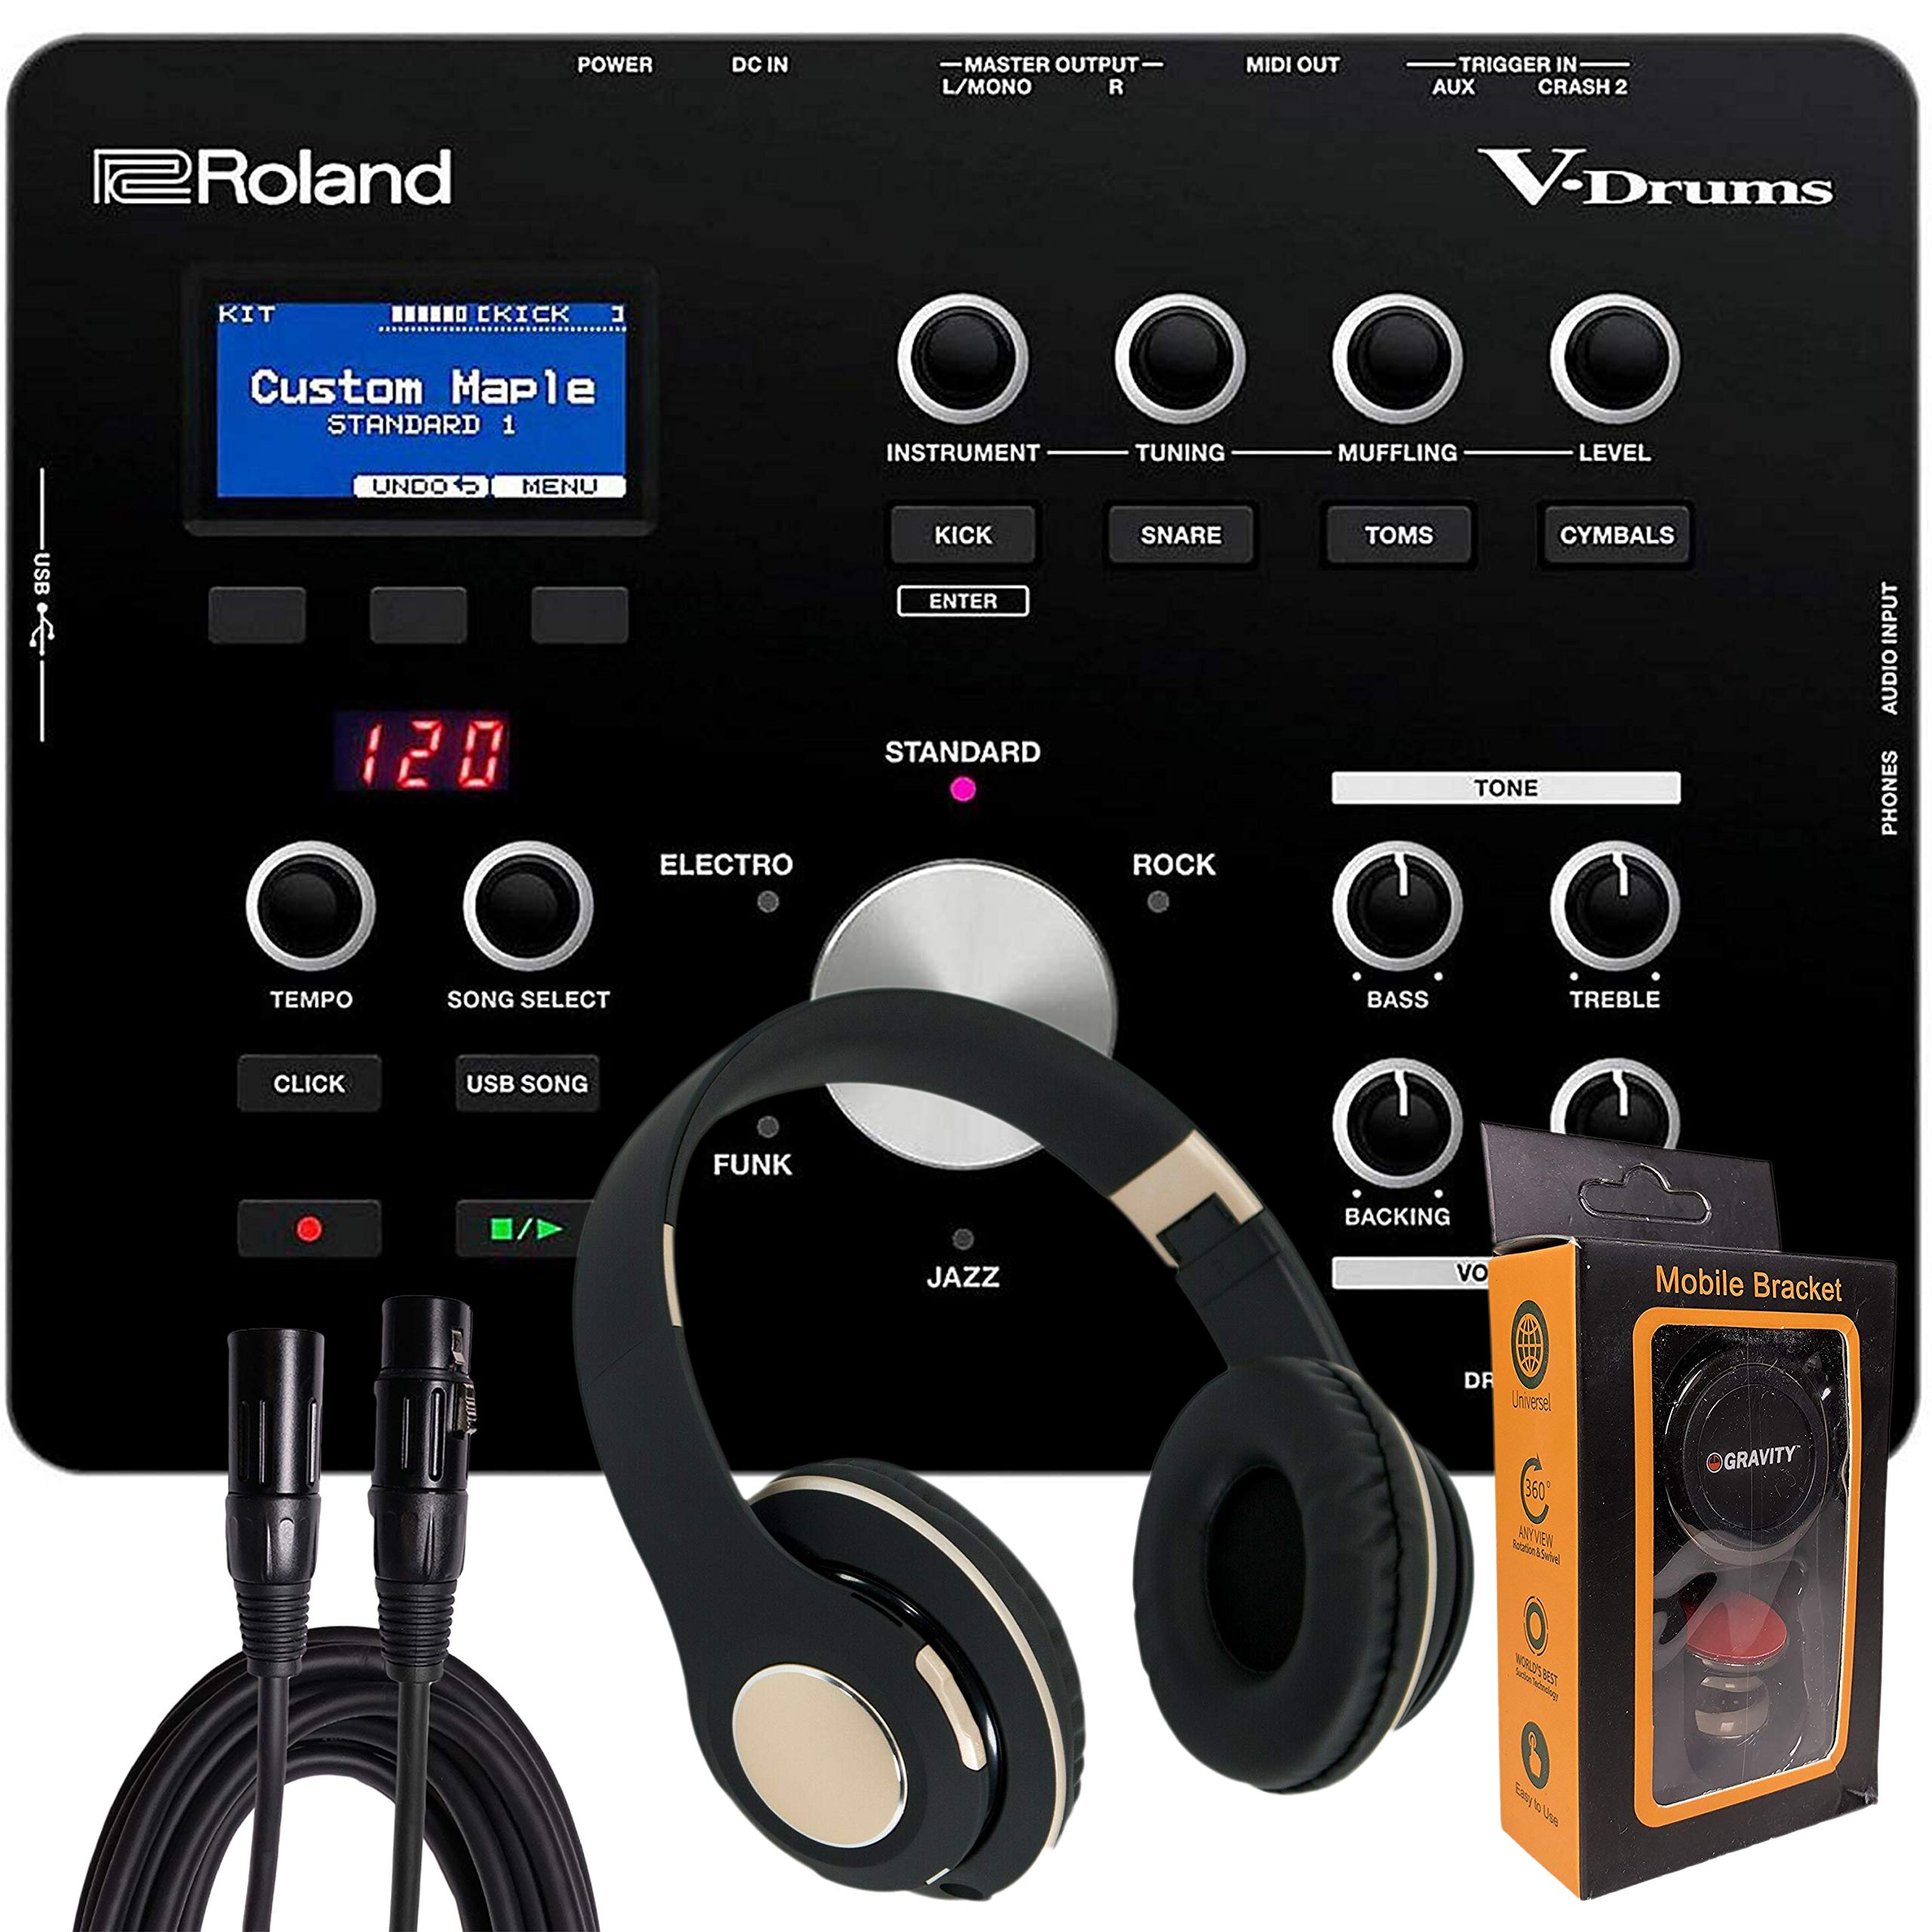 Roland Electronic Drum Modules, Black, Medium (TD-25) with Bluetooth Headphone, XLR Cable with Magnet Phone Holder Pack1 by Roland